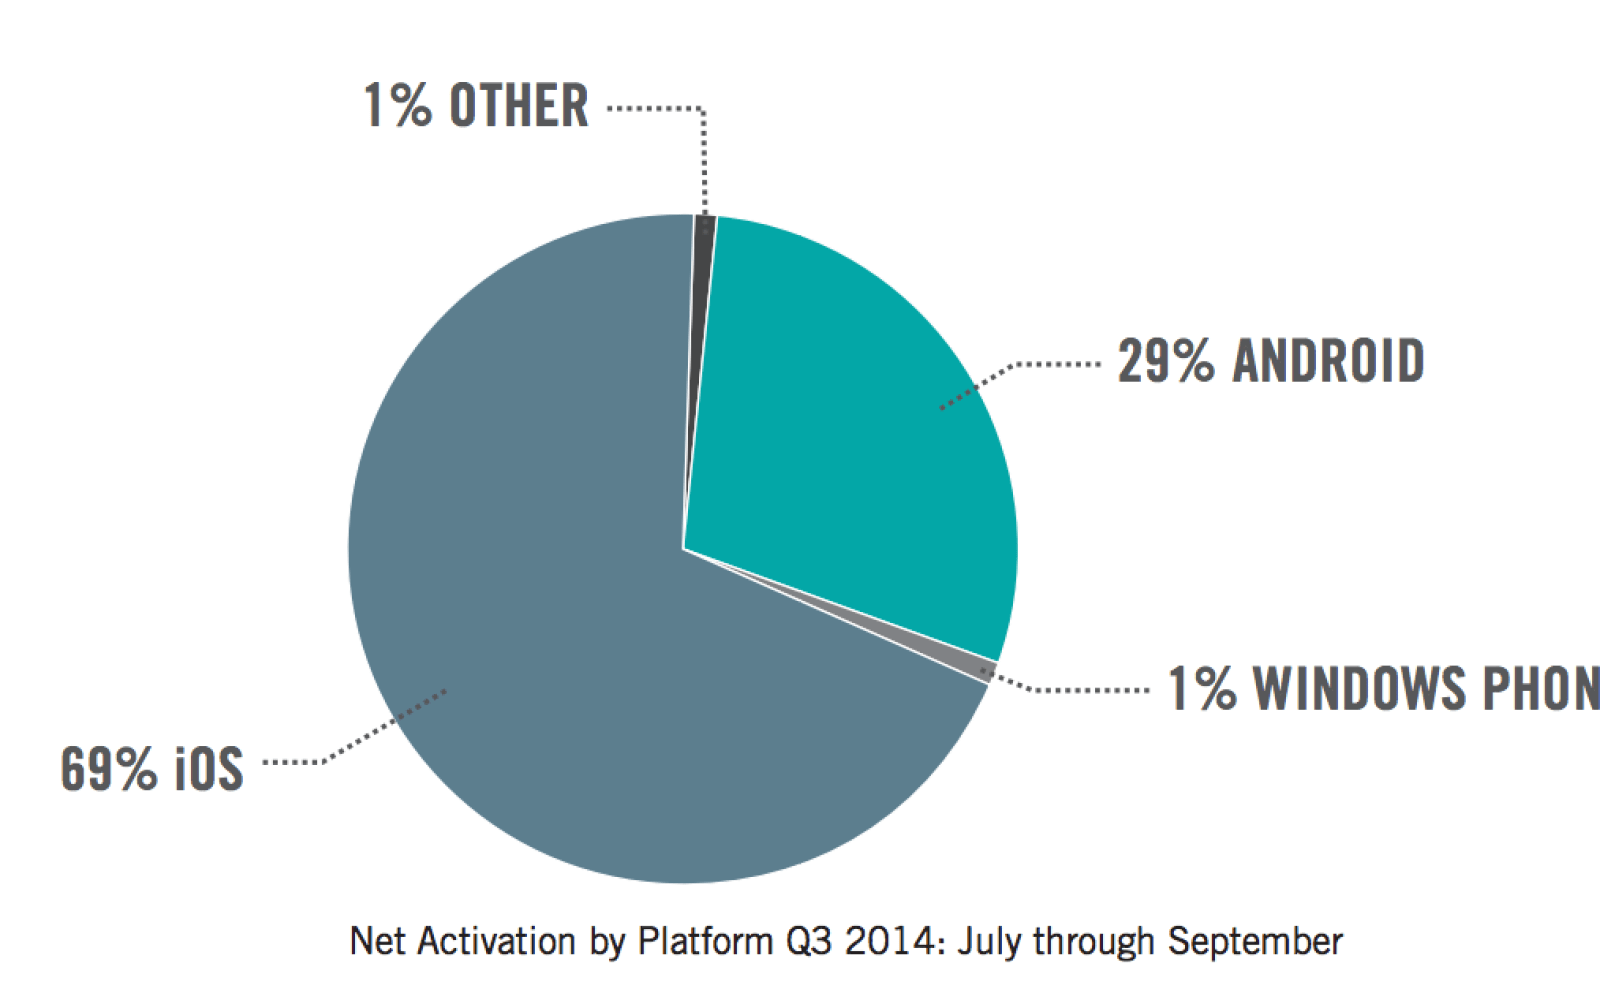 iPhone 6 & 6 Plus increase iOS enterprise share at the expense of Android